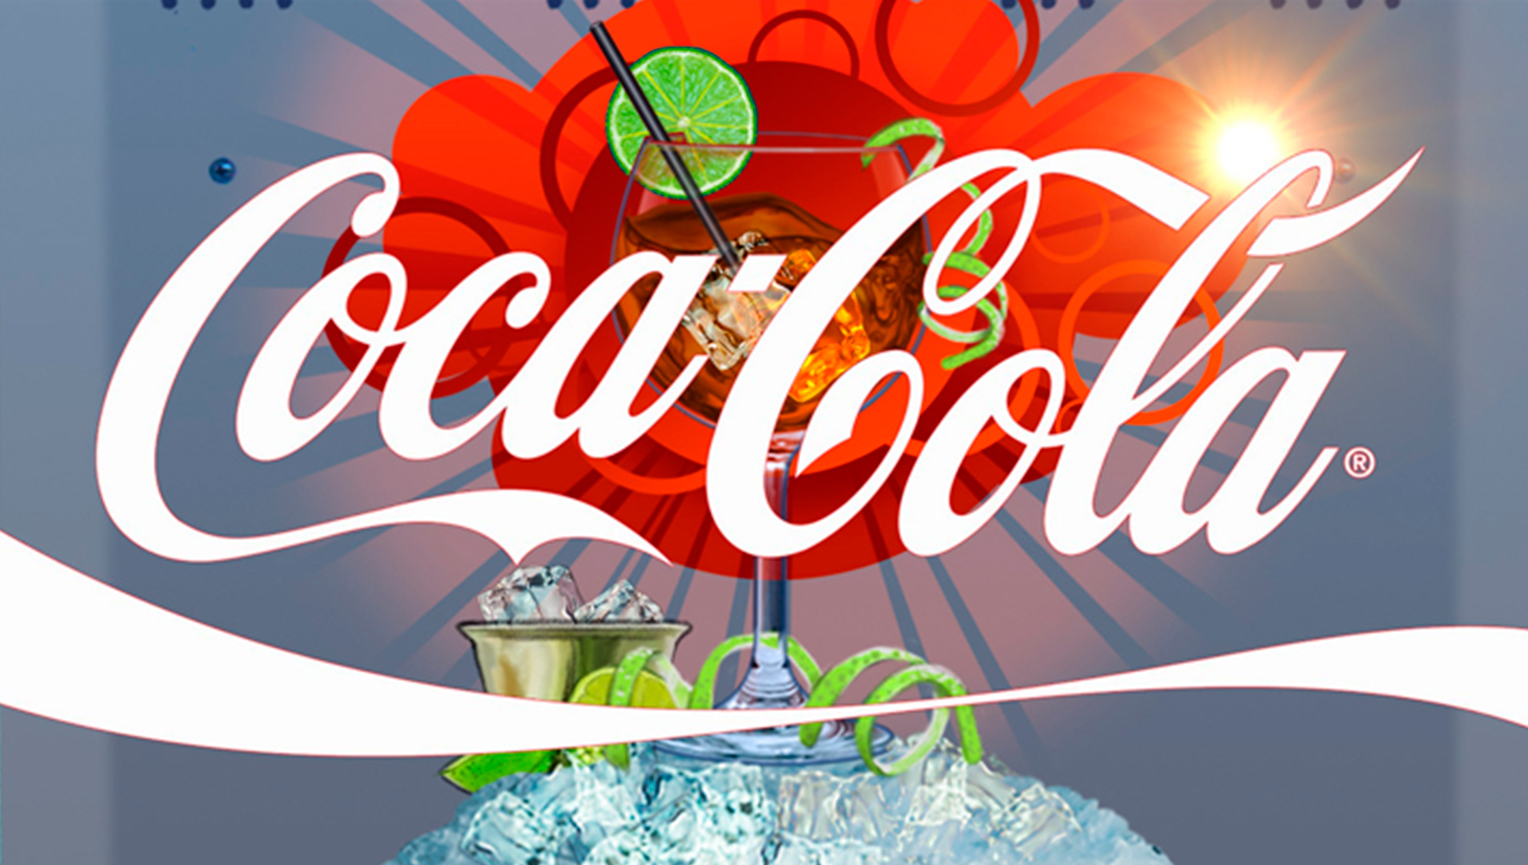 Coca-cola / Cheil Spain / I-real studios - 08/08